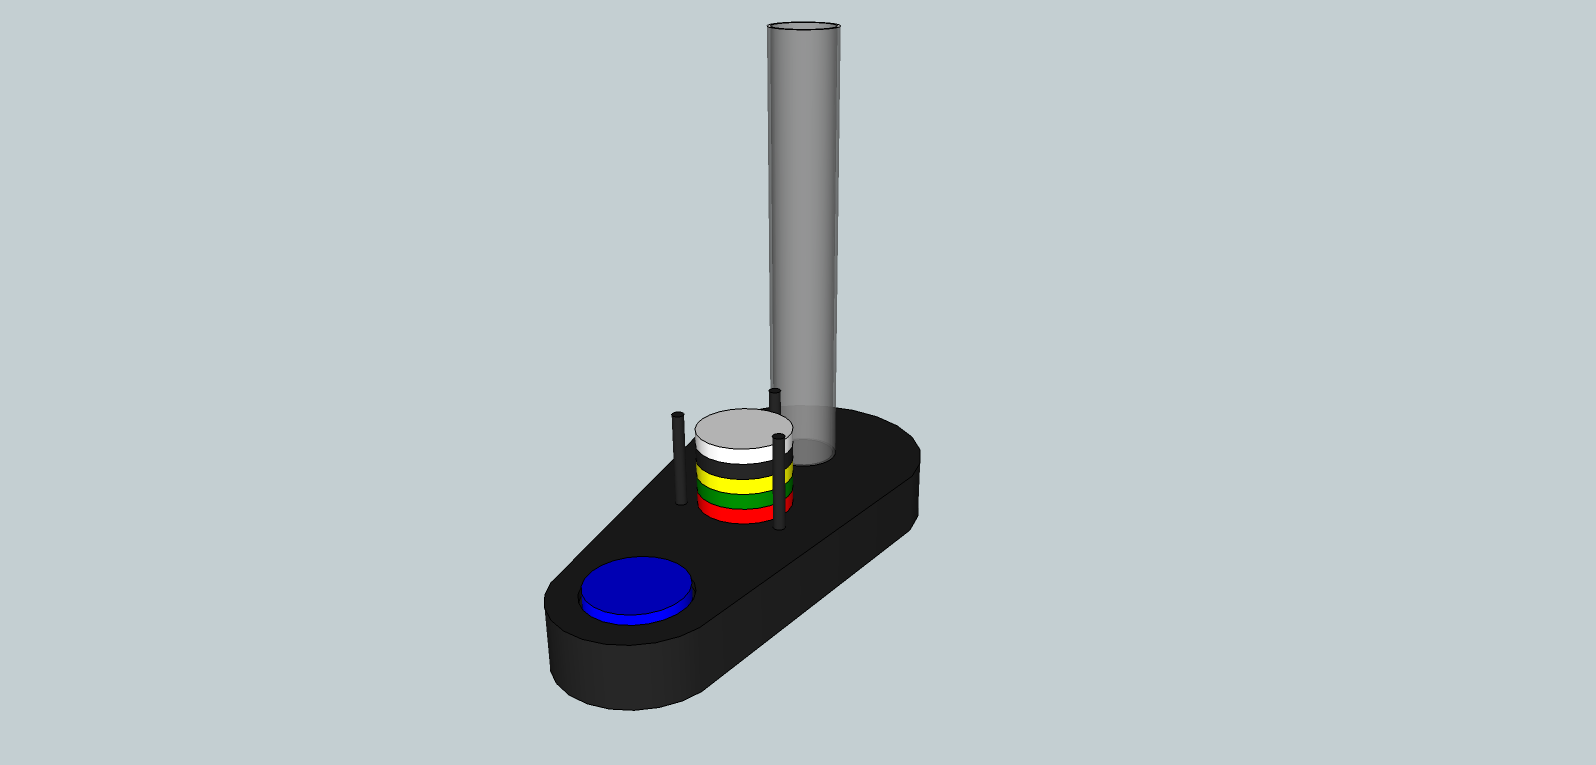 RGB / RFID Lamp Sketchup Drawing